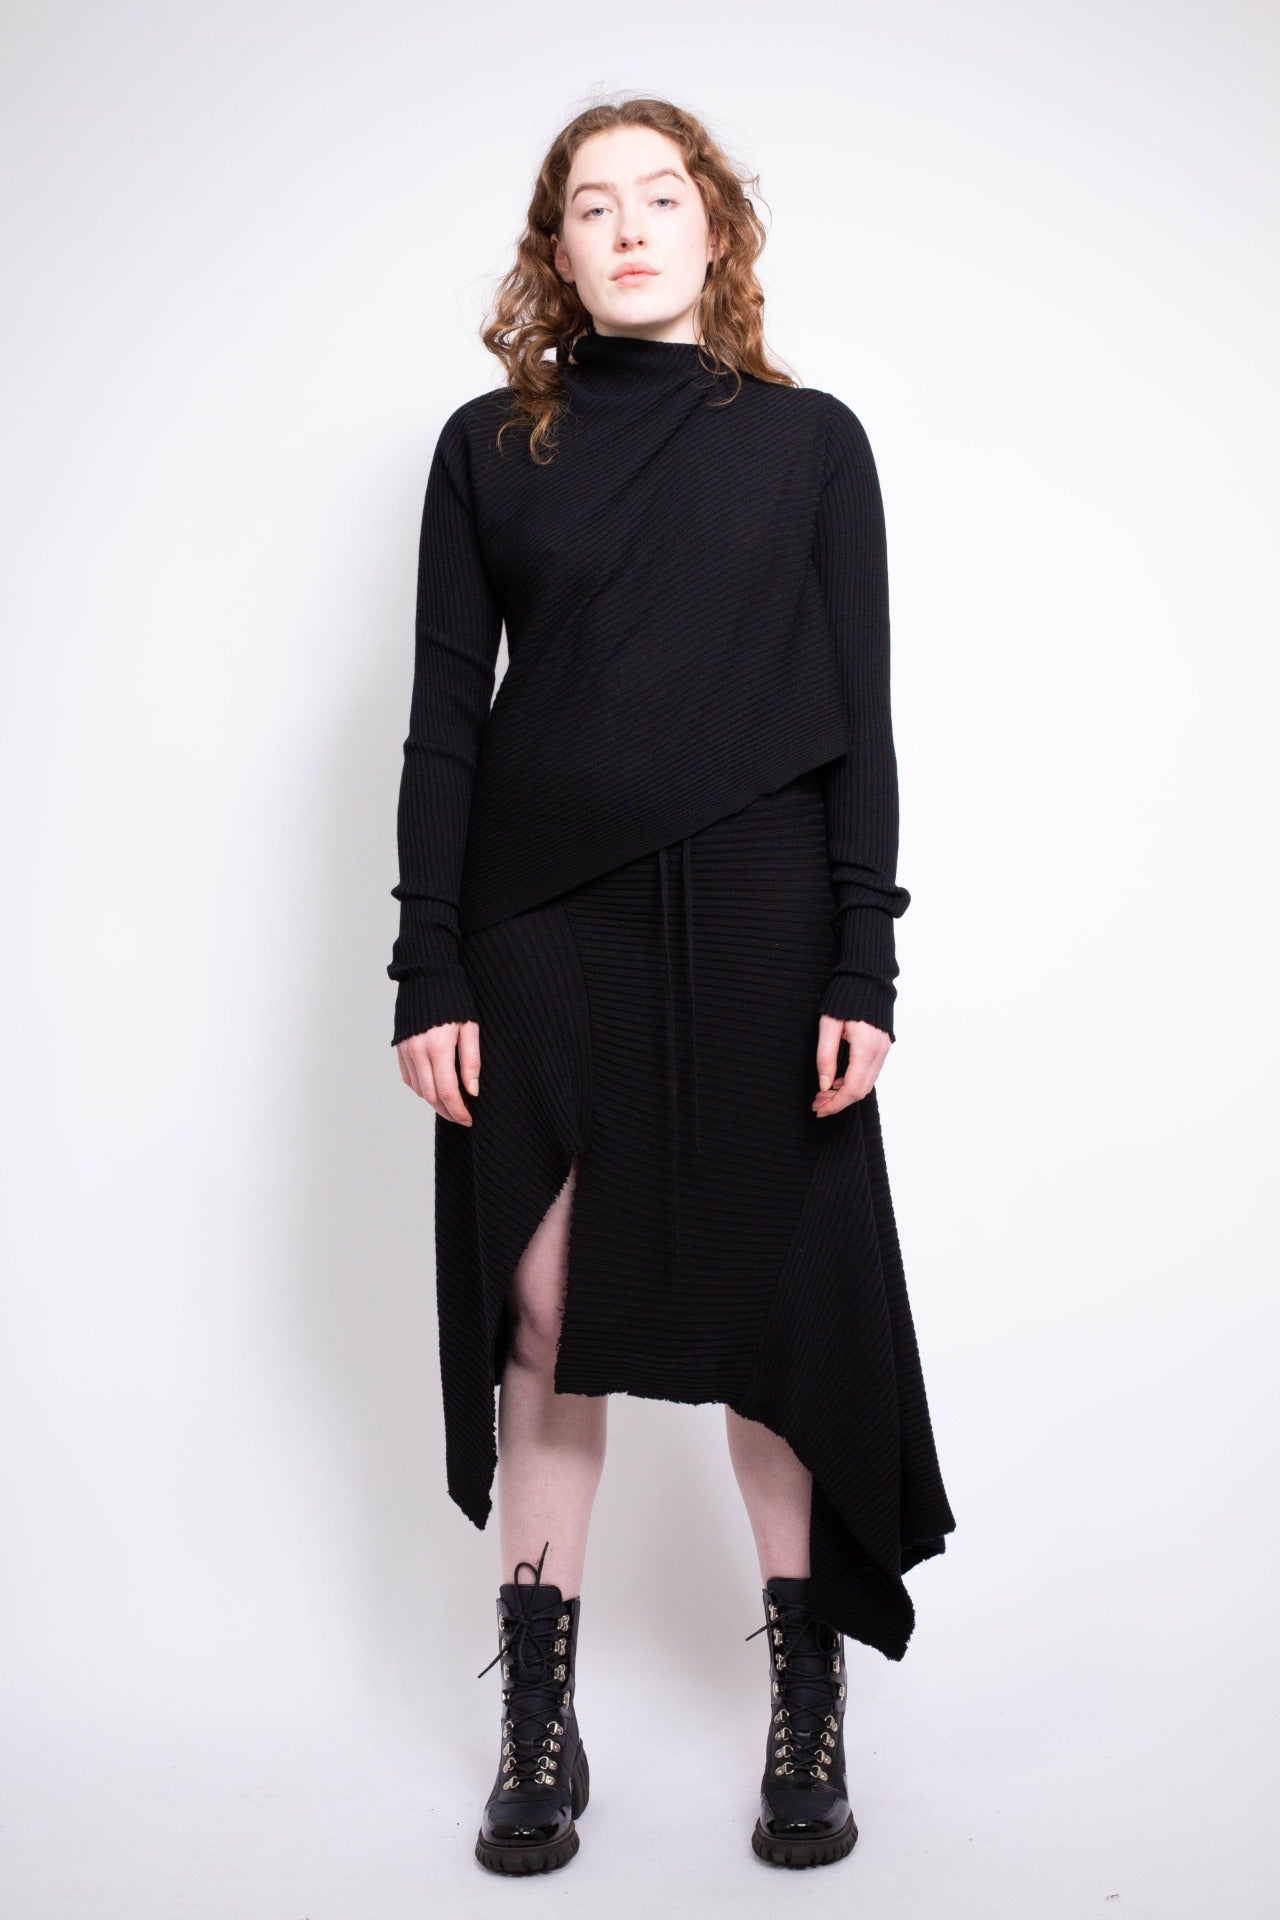 CLASSIC M'A DRAPED MERINO SKIRT IN BLACK - marques-almeida-dev